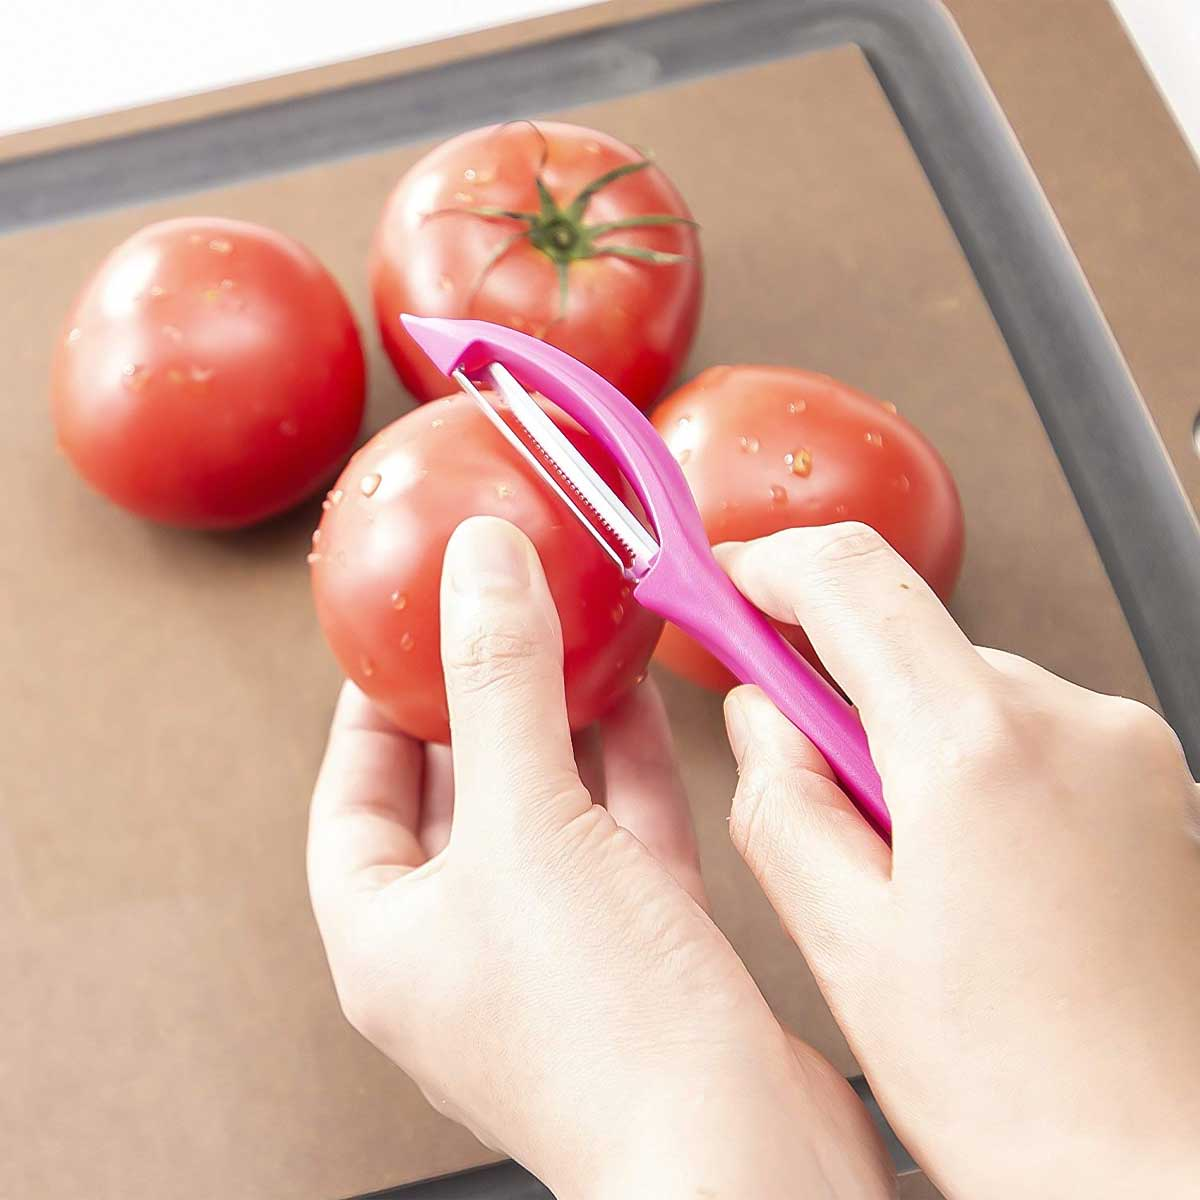 A person peeling tomatoes with a Victorinox serrated vegetable peeler.